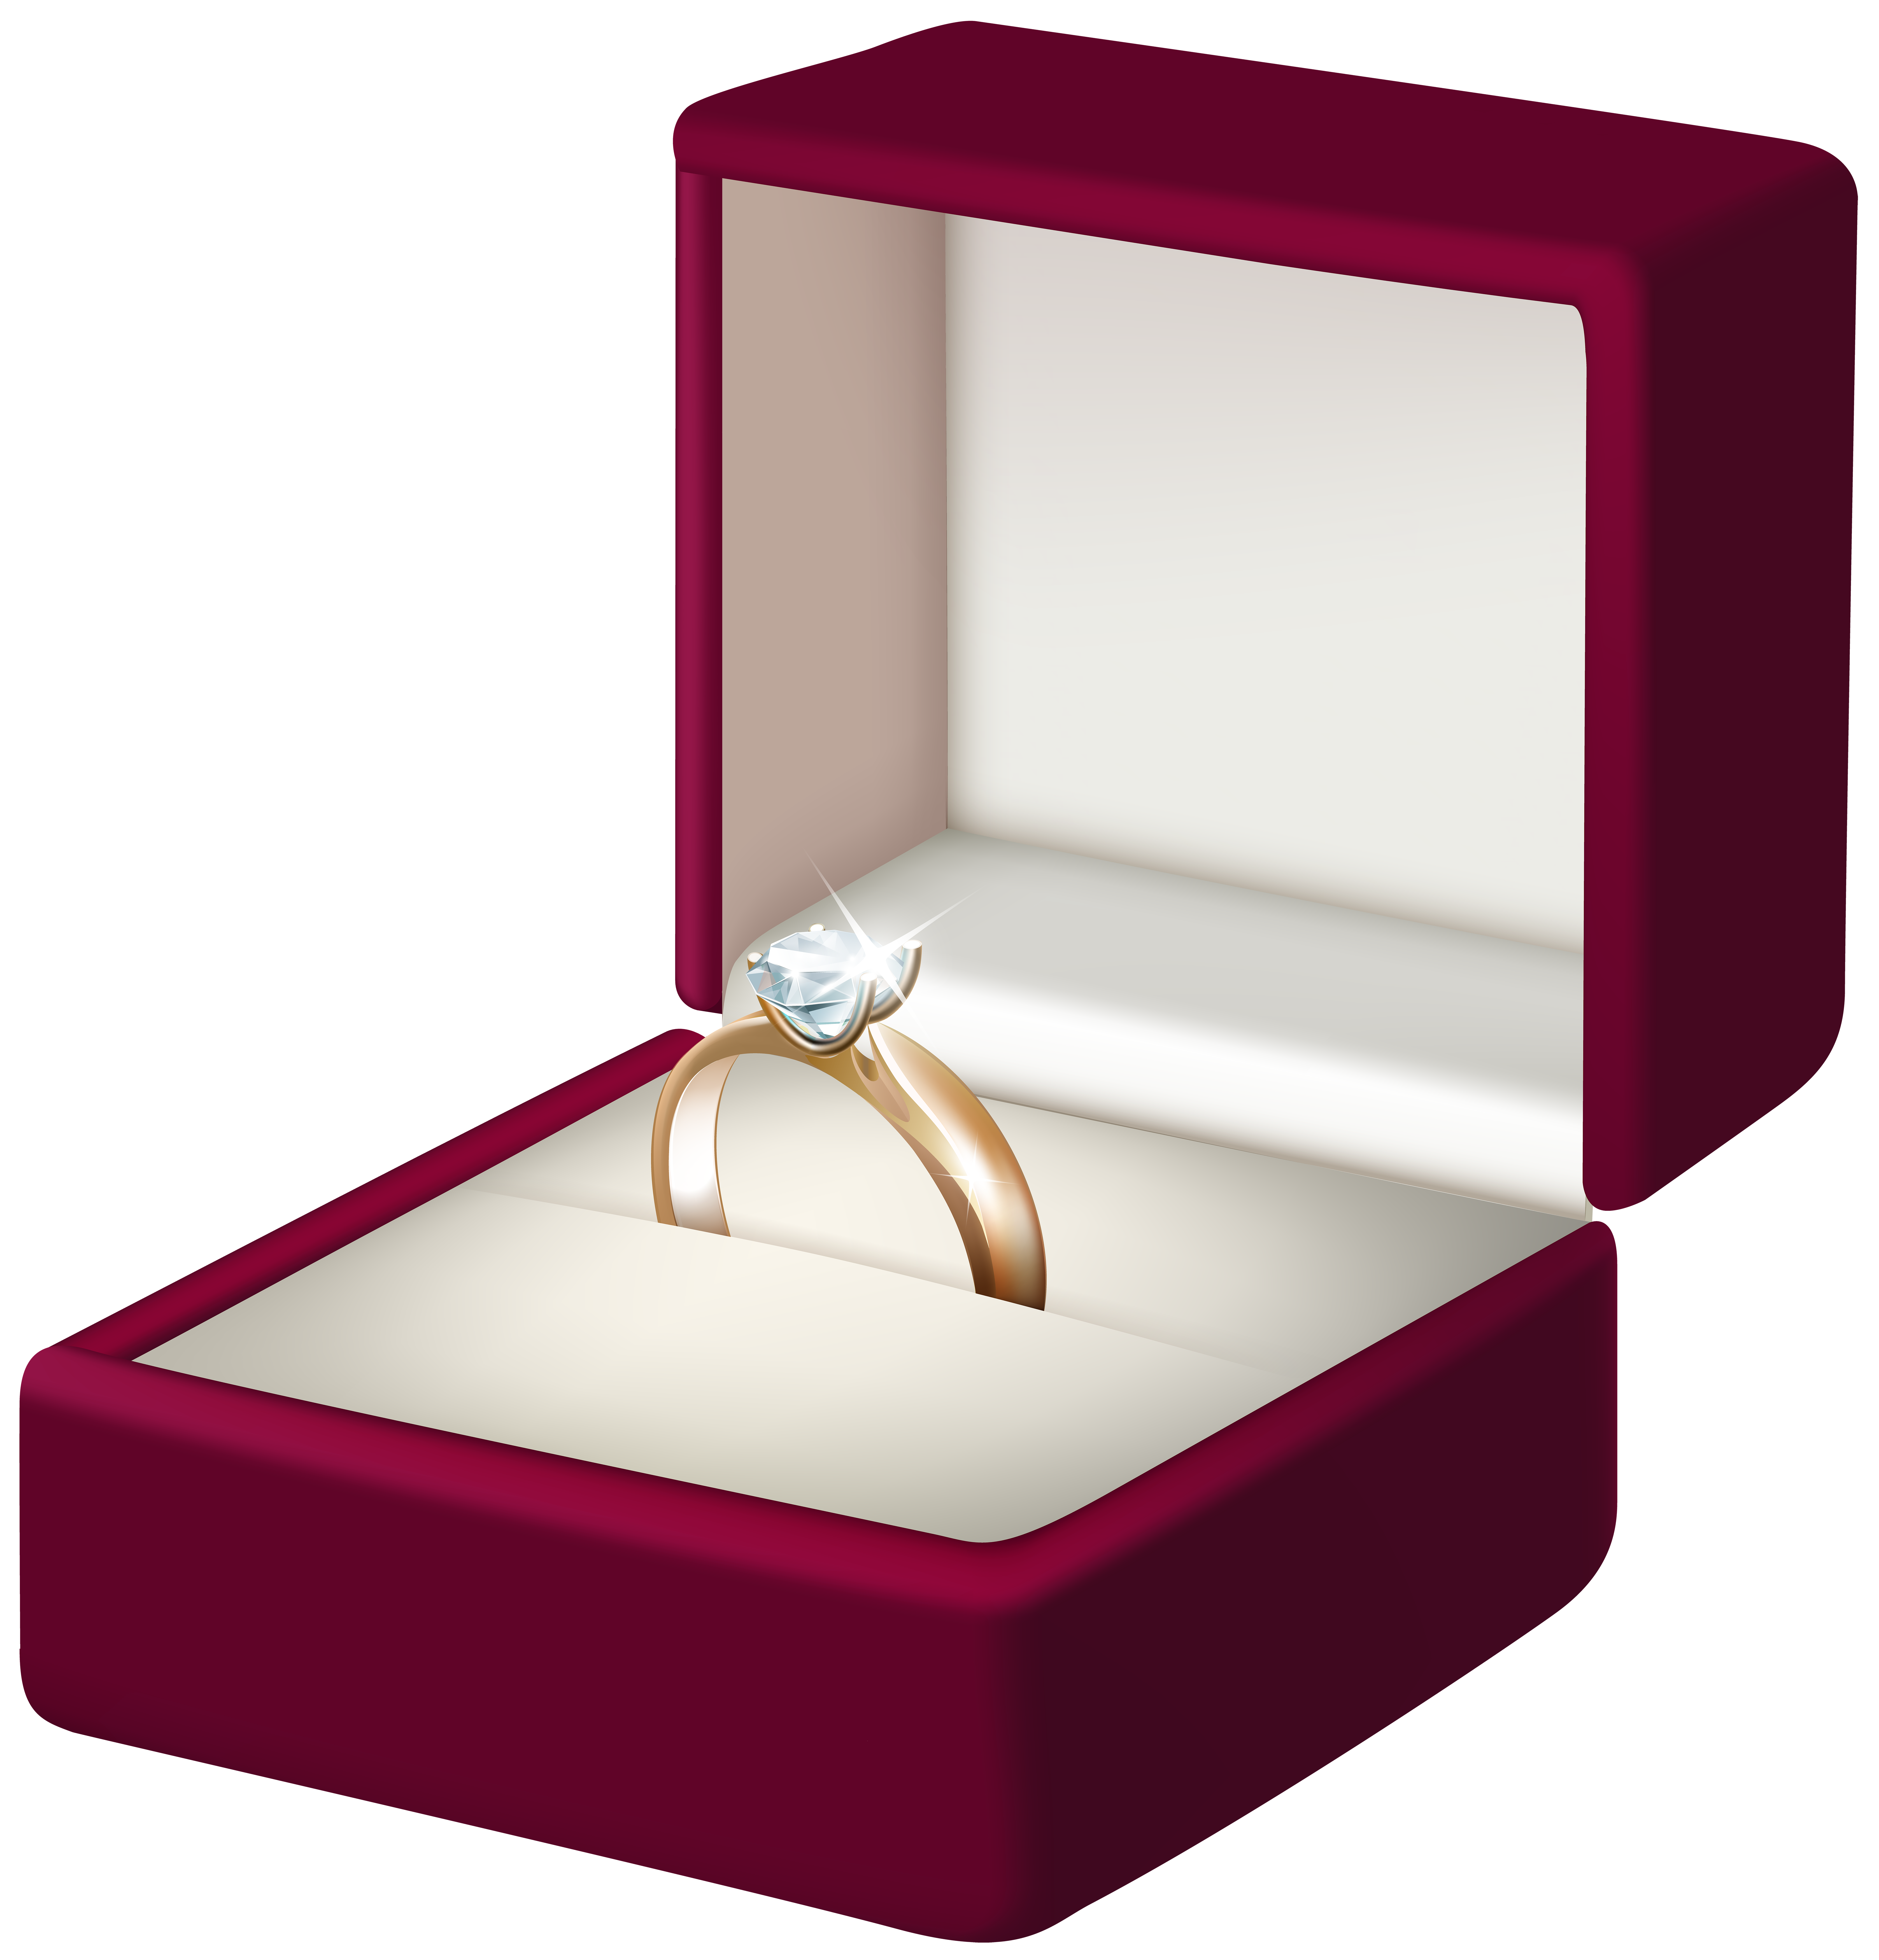 Engagement clipart in box. Ring transparent png clip